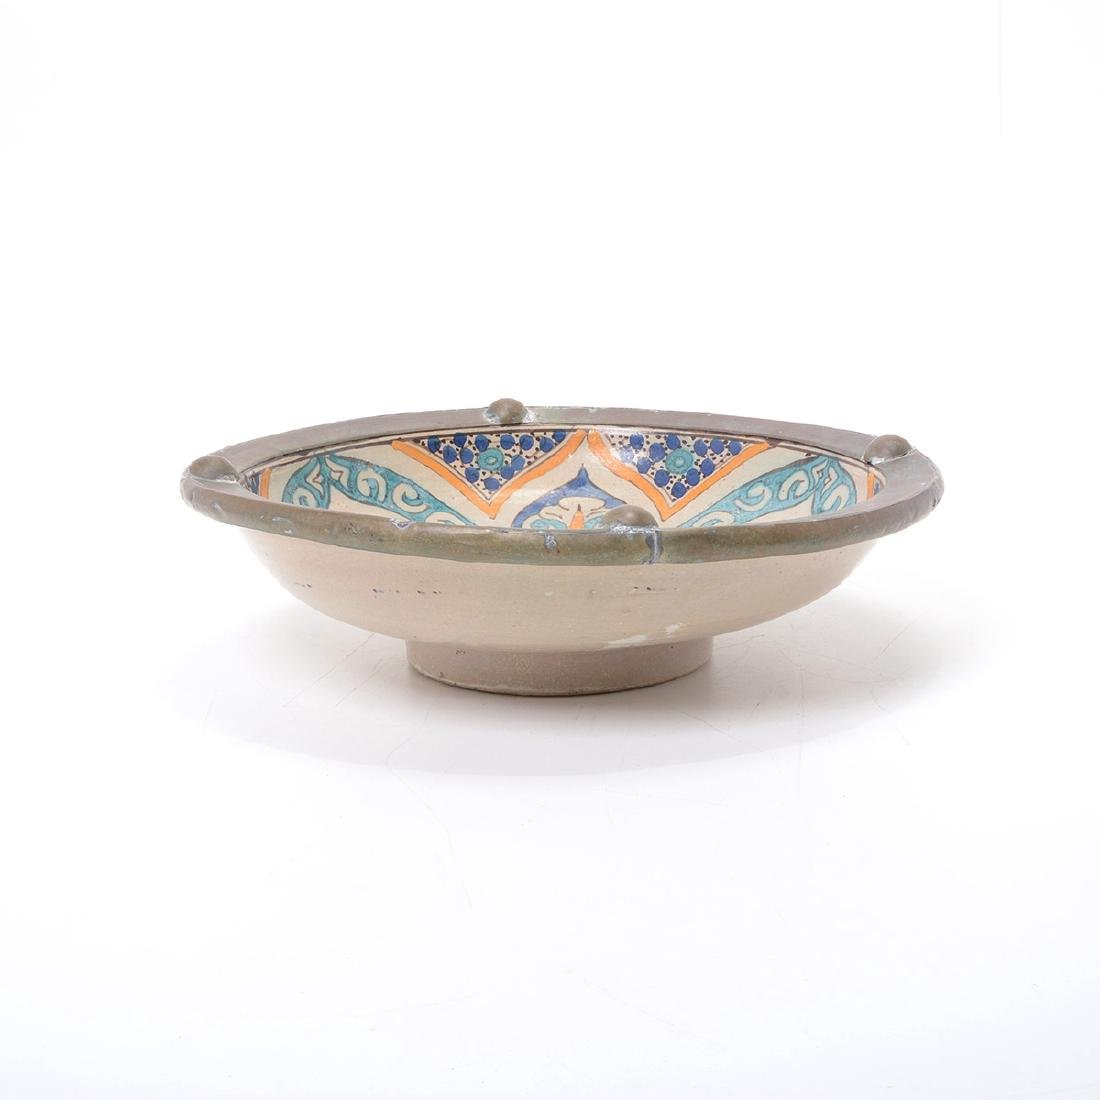 Copper Mounted Talavera Faience Bowl - 4